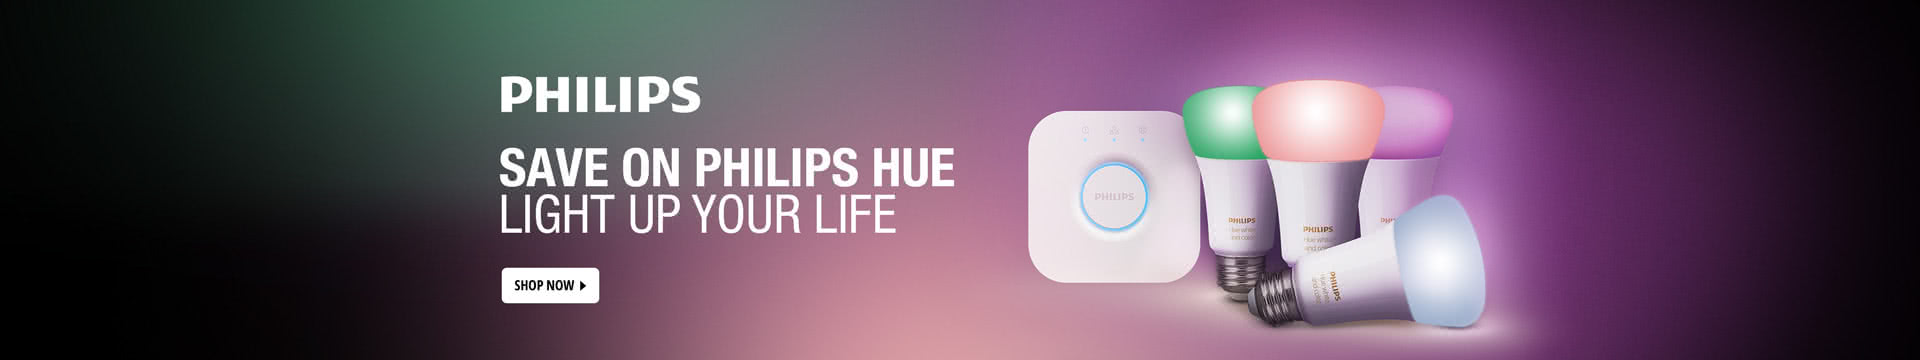 Save on Philips Hue Light Up Your Life